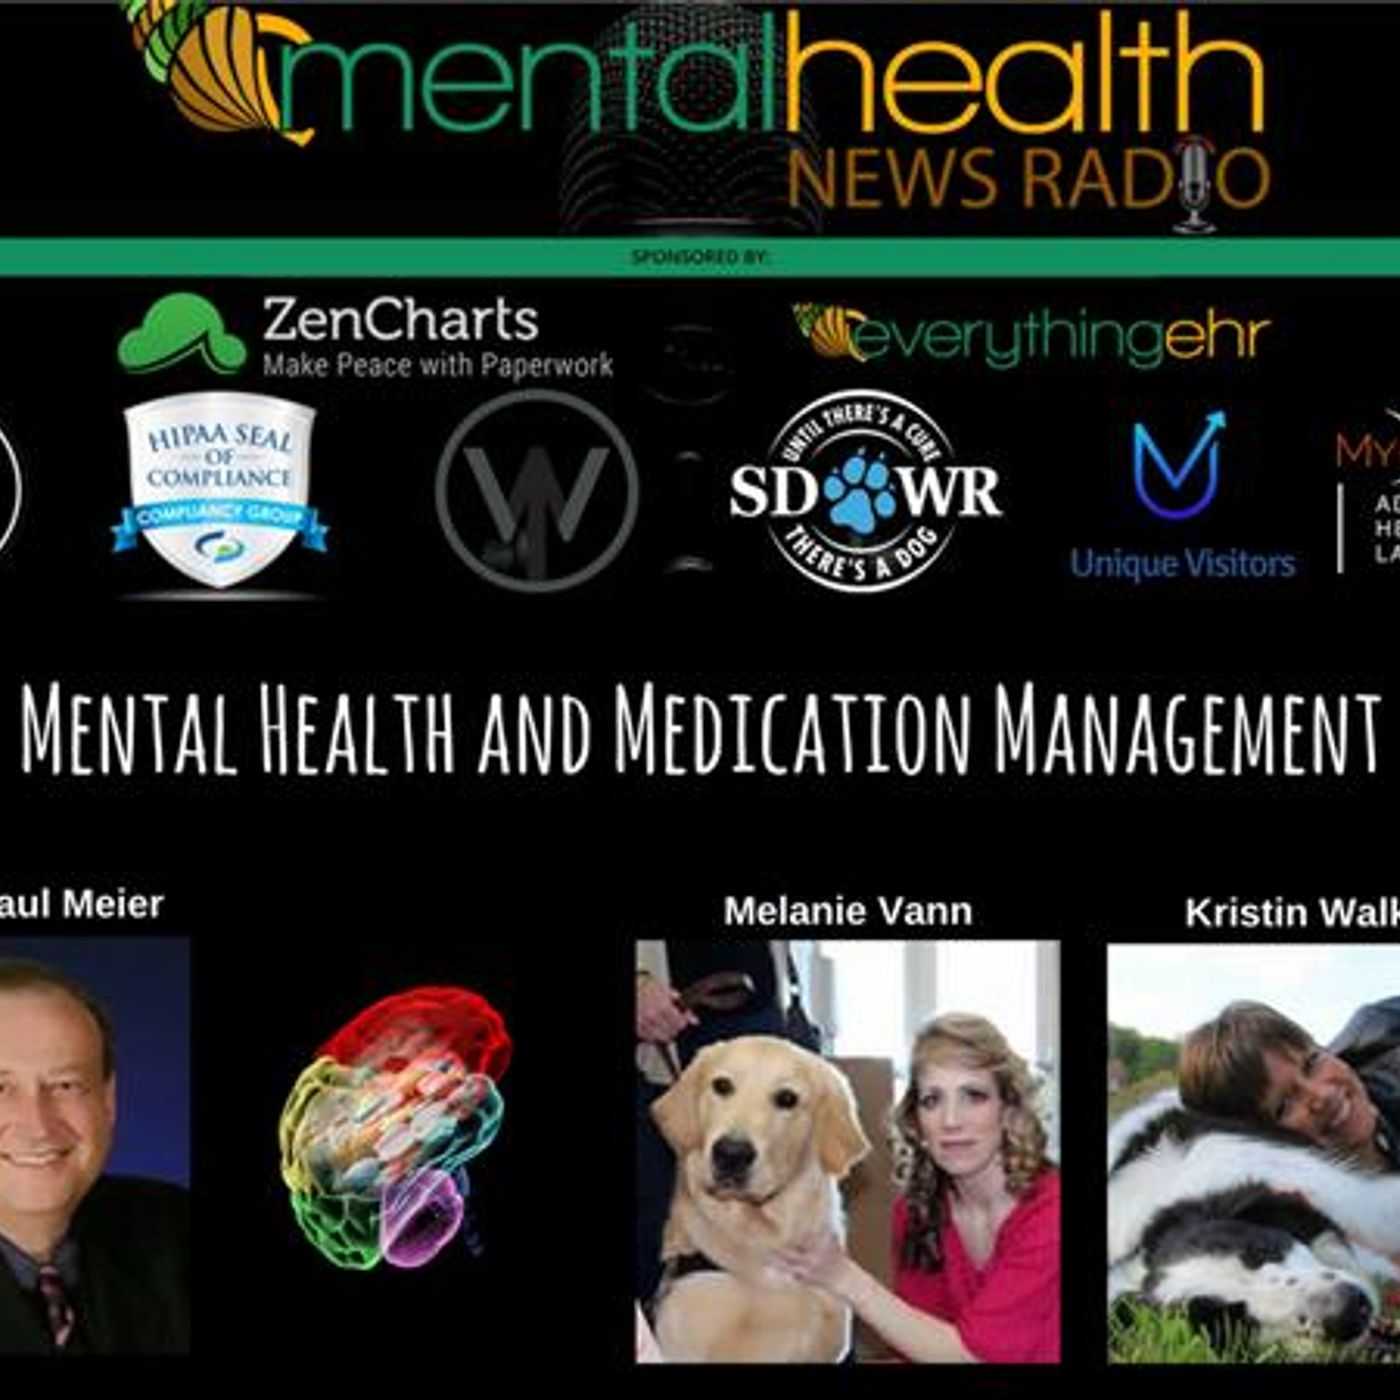 Mental Health News Radio - Round Table with Dr. Paul Meier: Mental Health and Medication Management